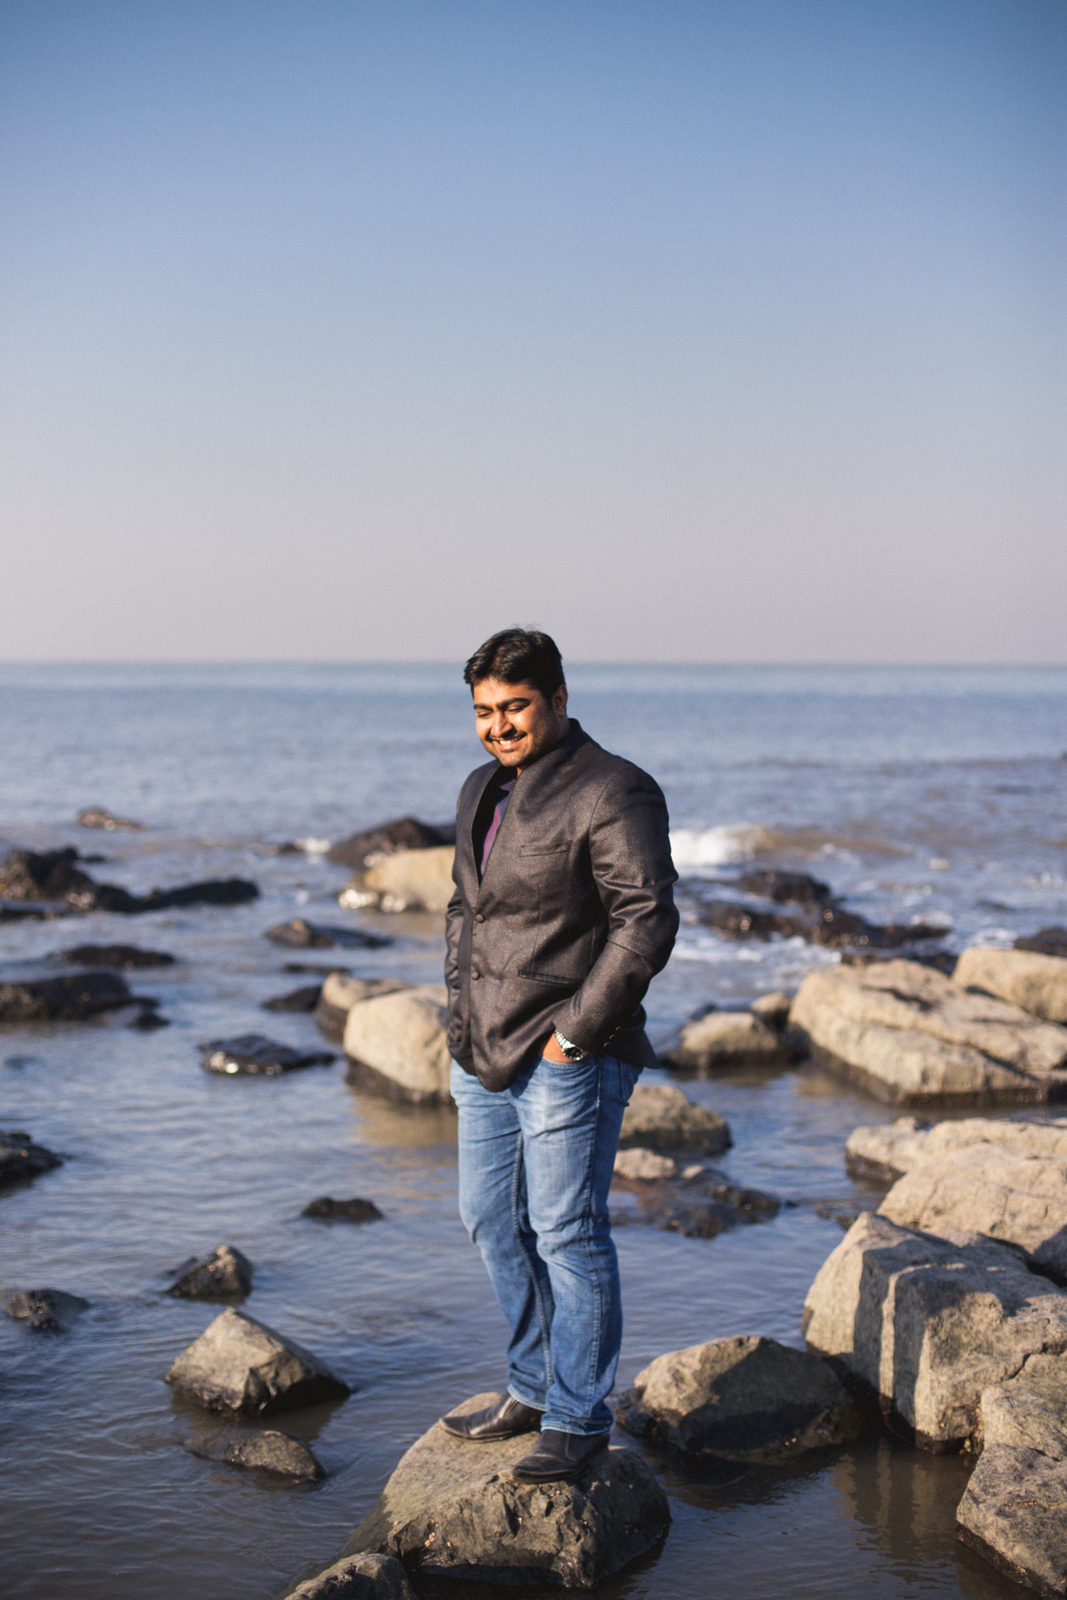 pooja-jiger-portrait-session-into-candid-photography-15.jpg